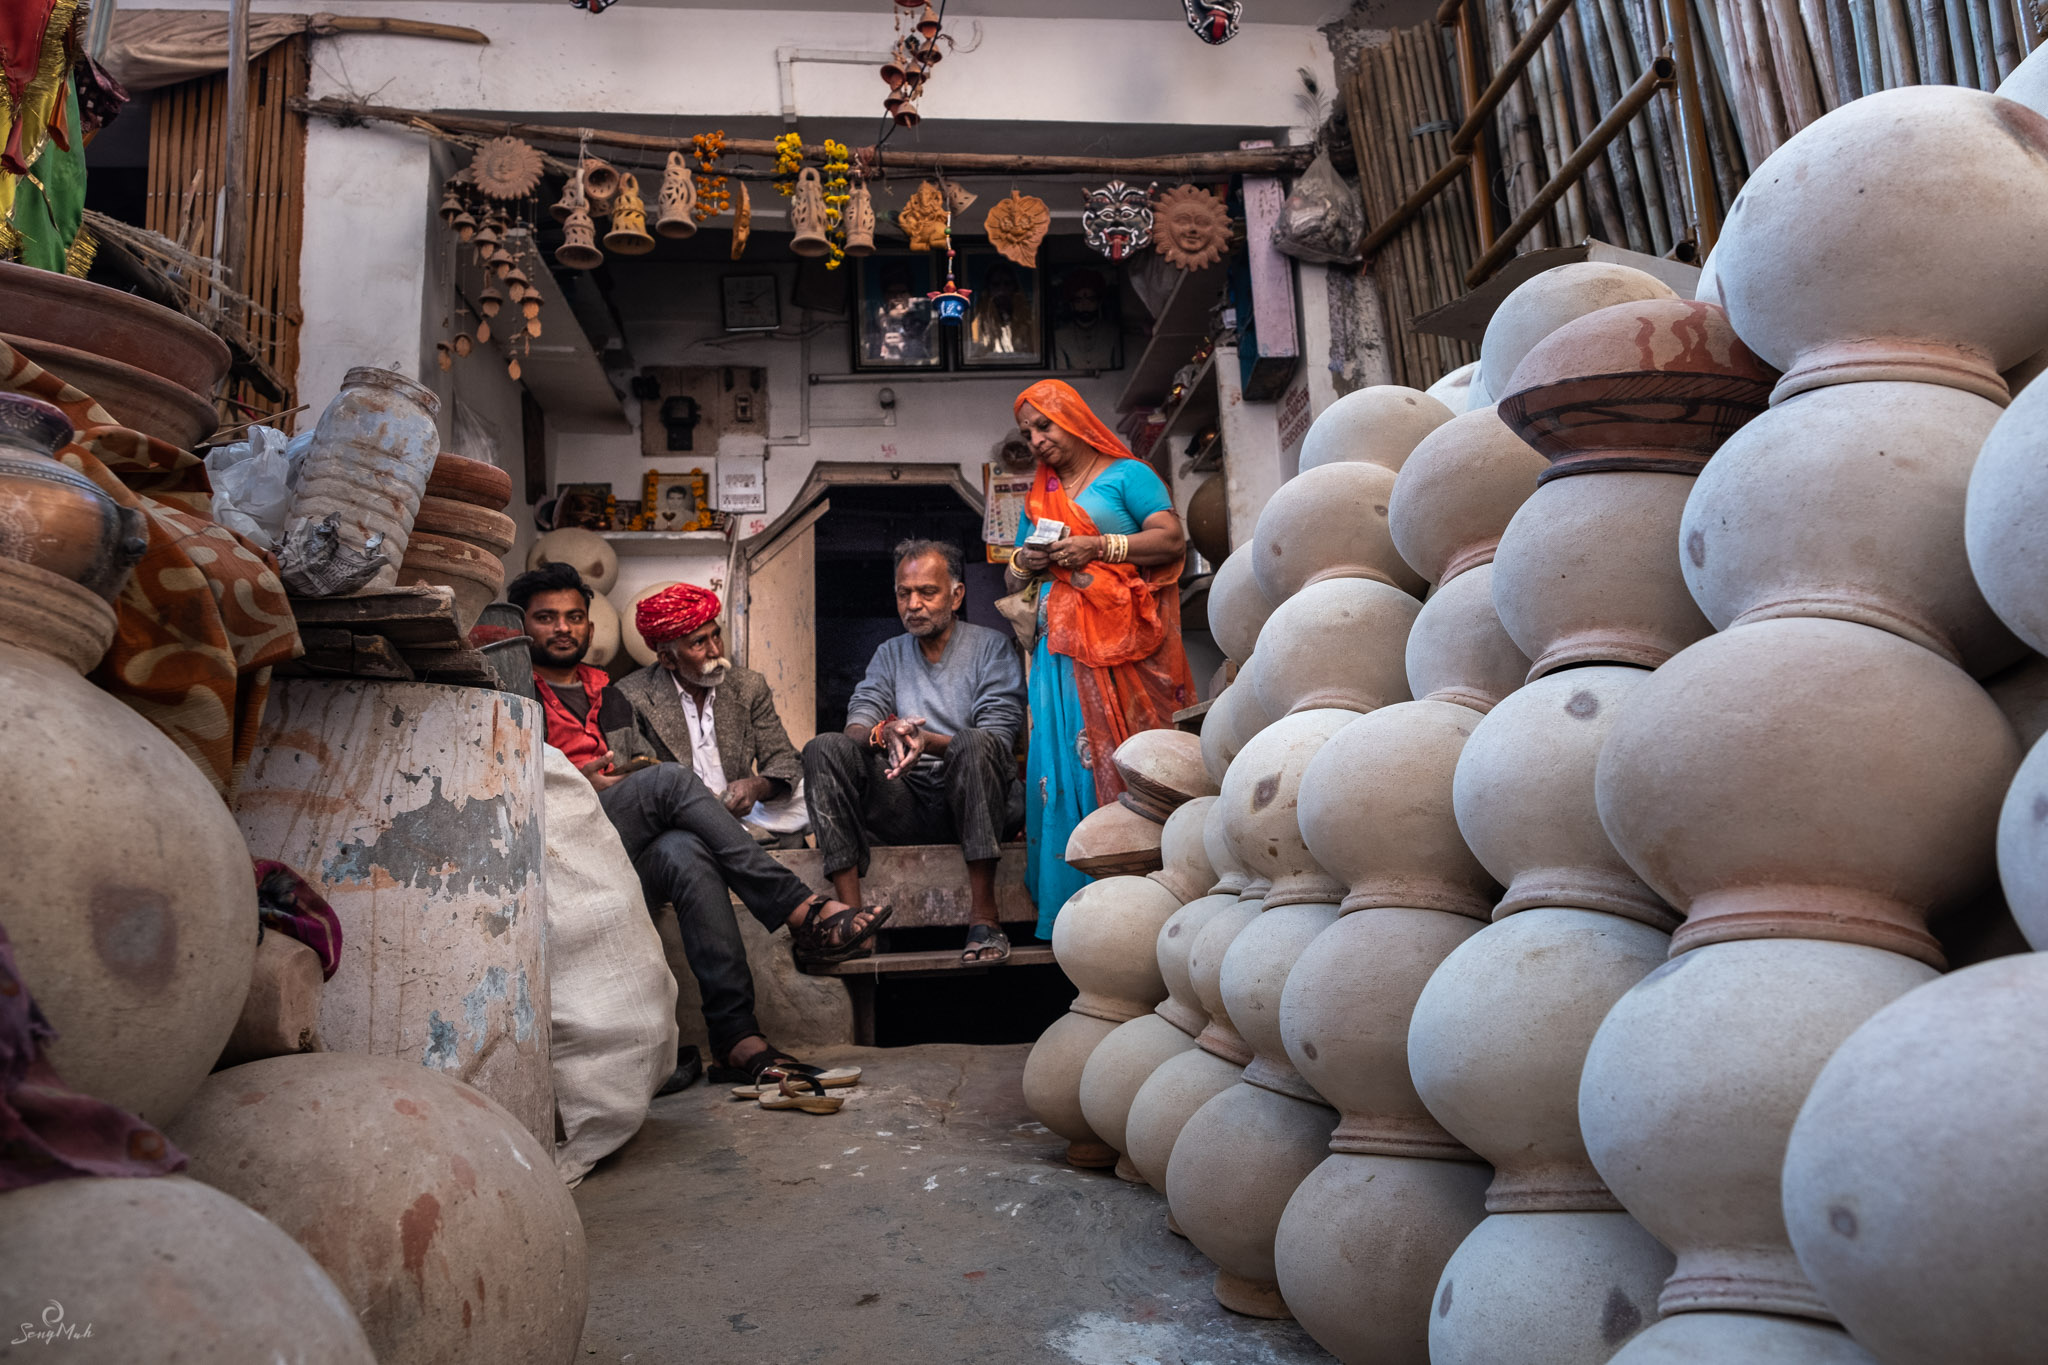 Pottery stall at Sardar Markets